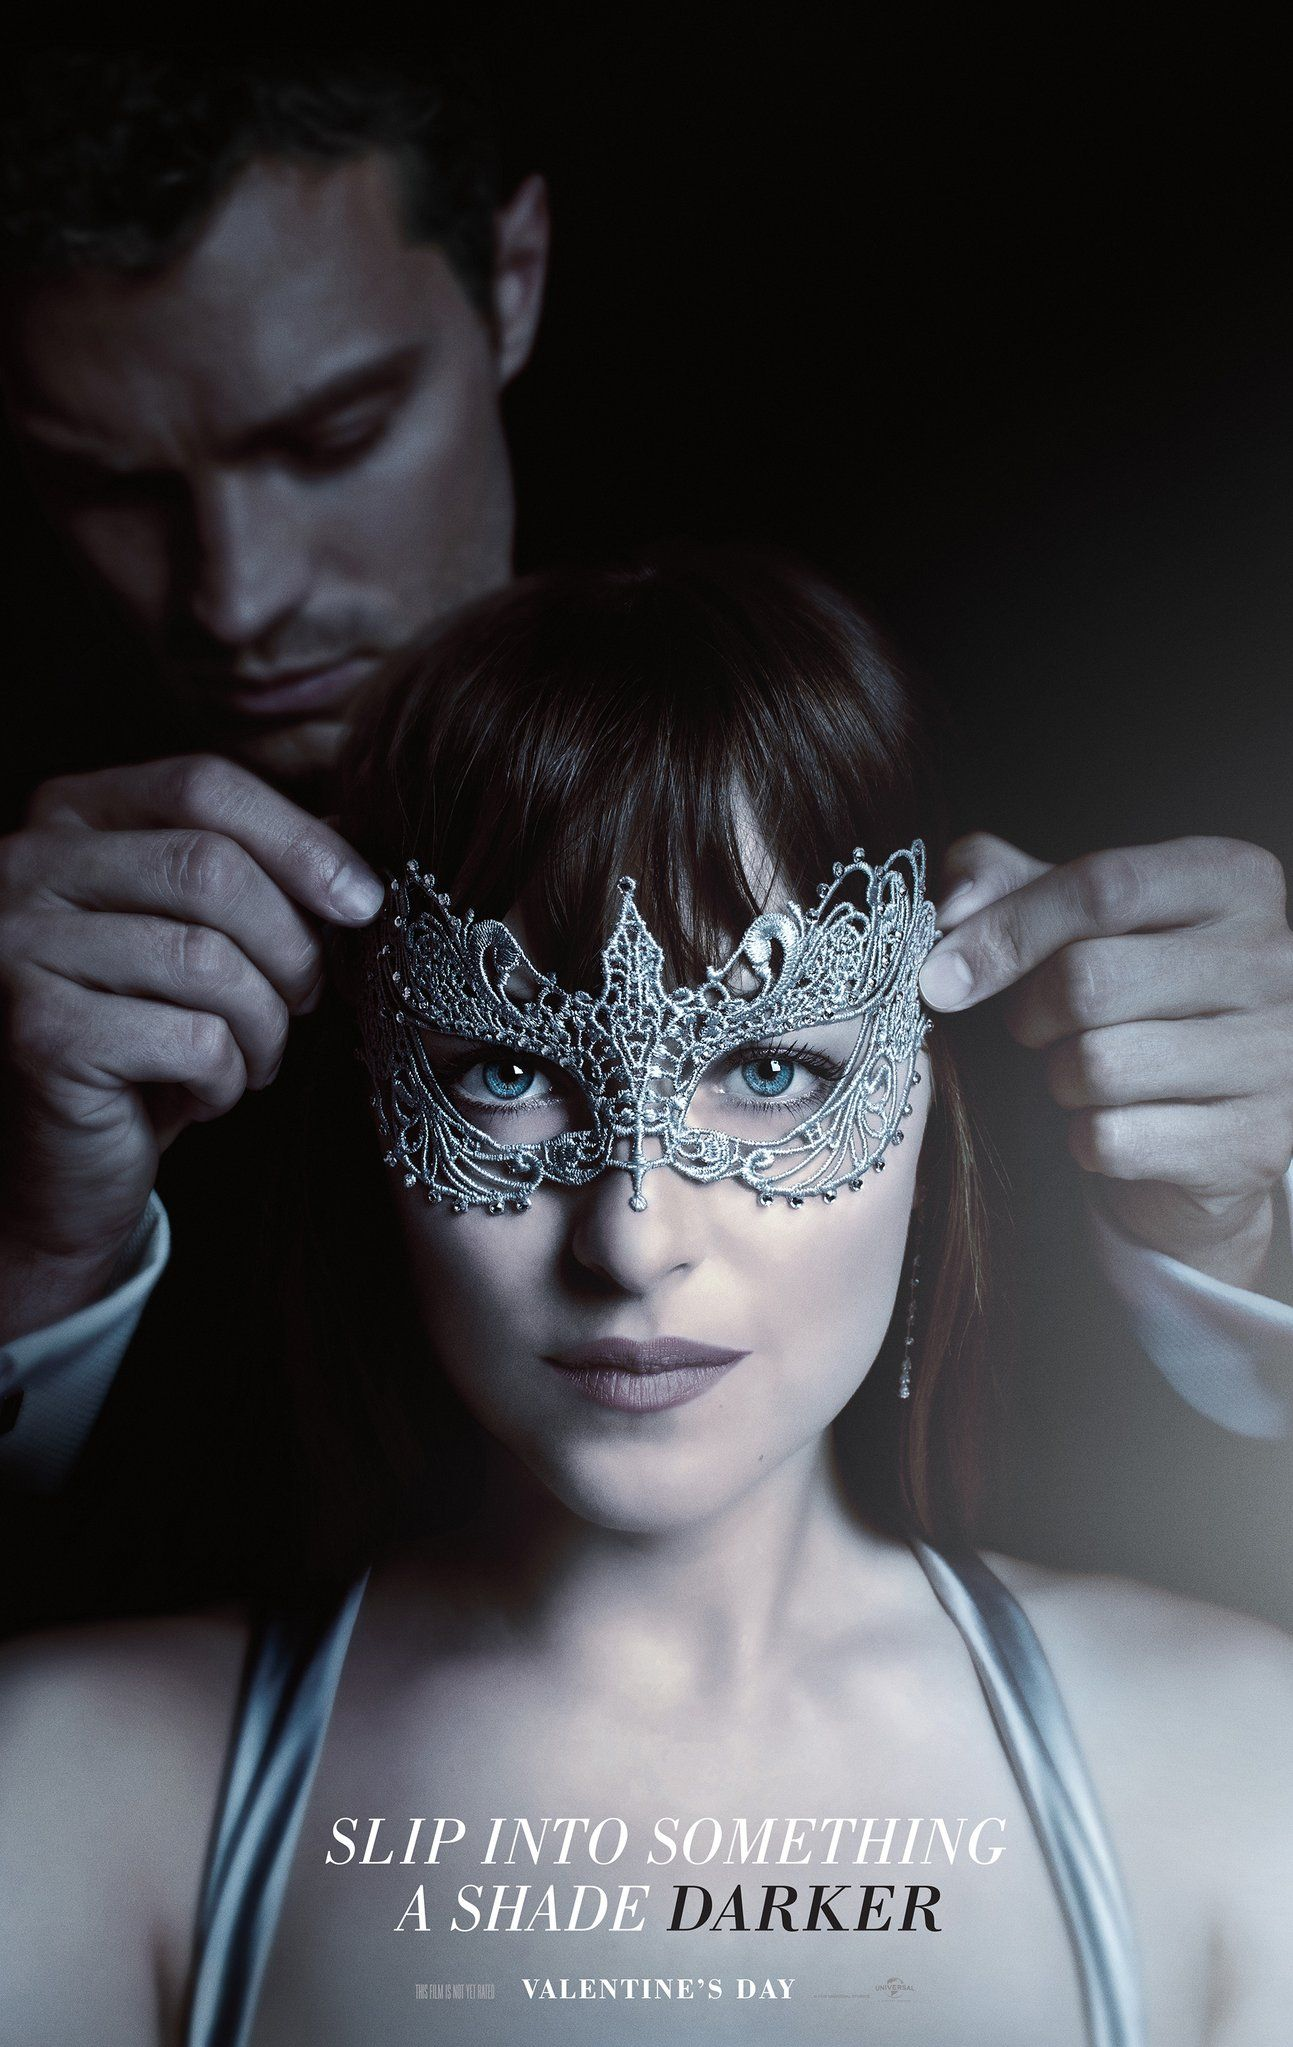 Fifty Shades Darker Trailer Teaser Hints at Kinky ...